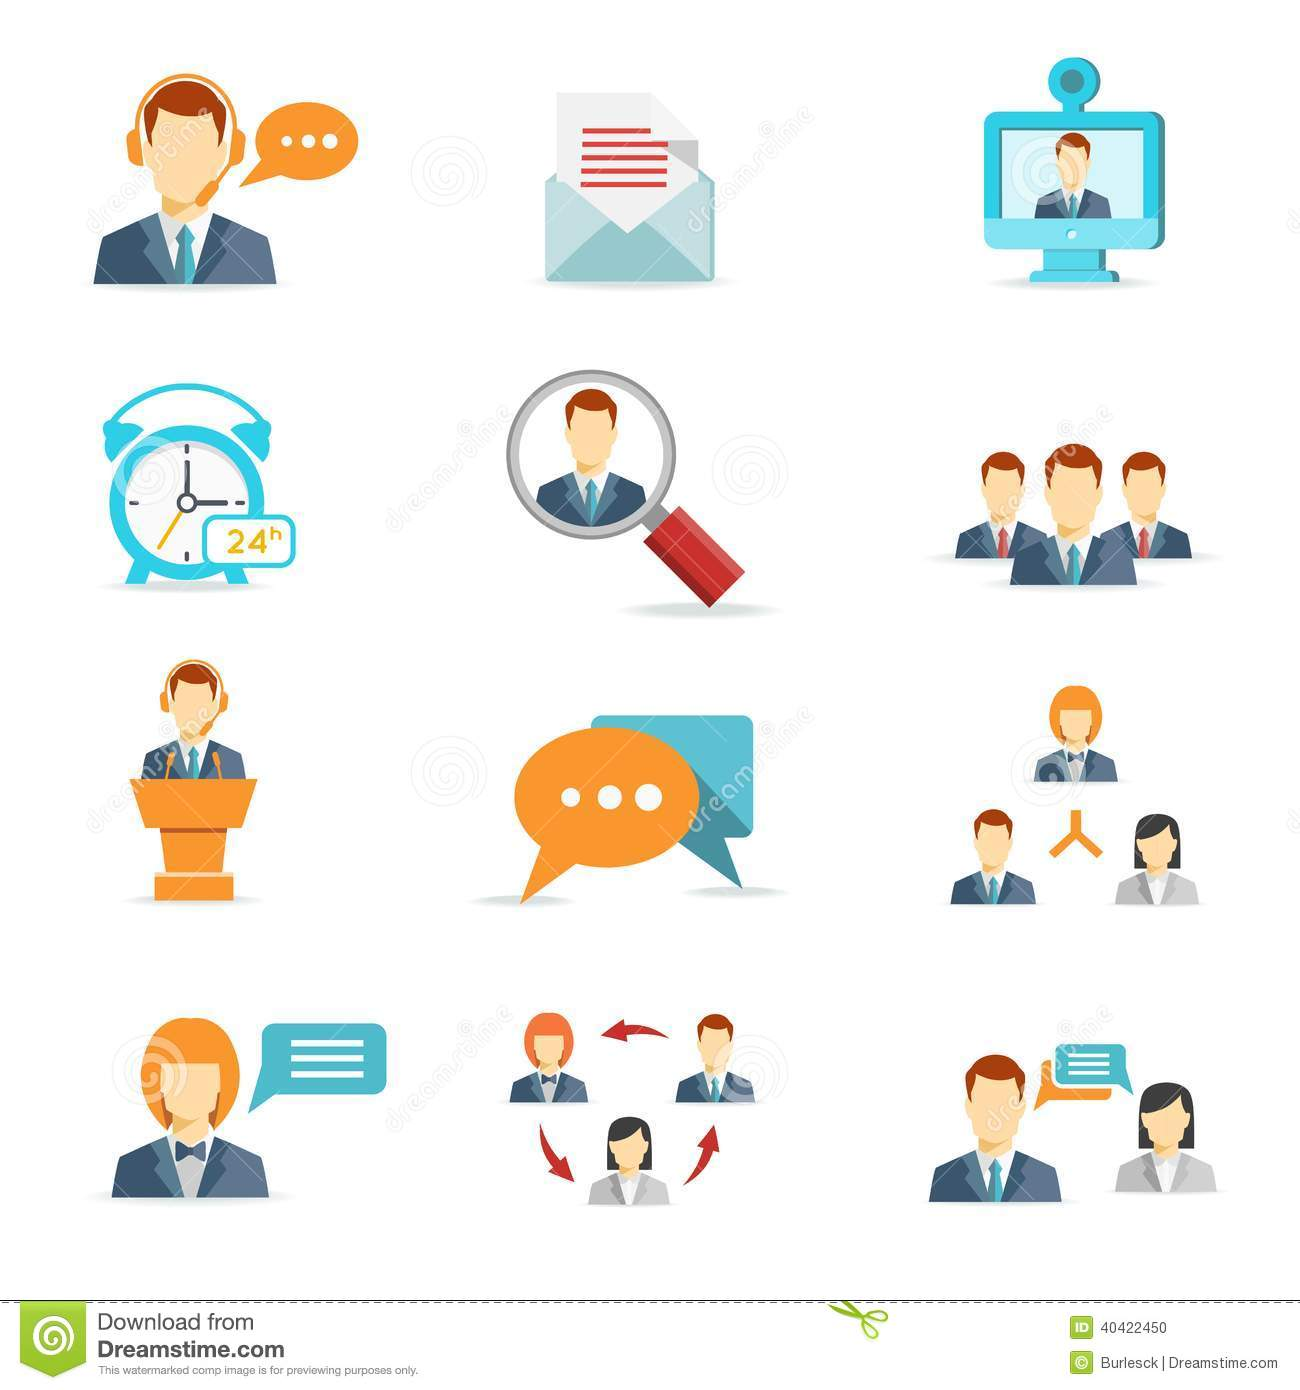 Business Communication And Web Conference Icons Stock Photo - Image ...